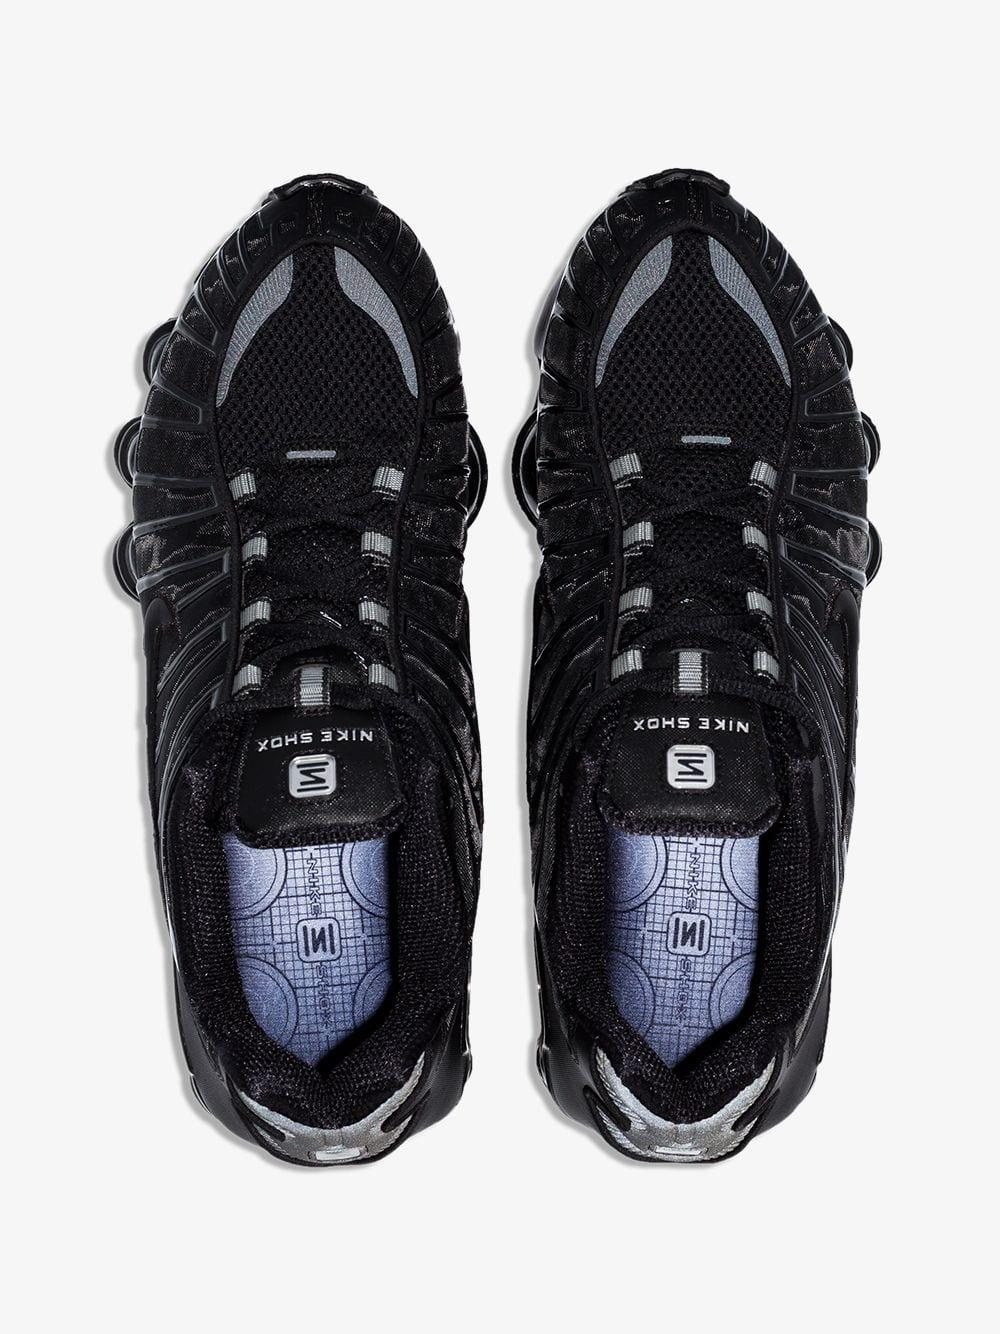 new style 4823a 23d6f Nike - Black Shox Tl Low-top Sneakers for Men - Lyst. View fullscreen